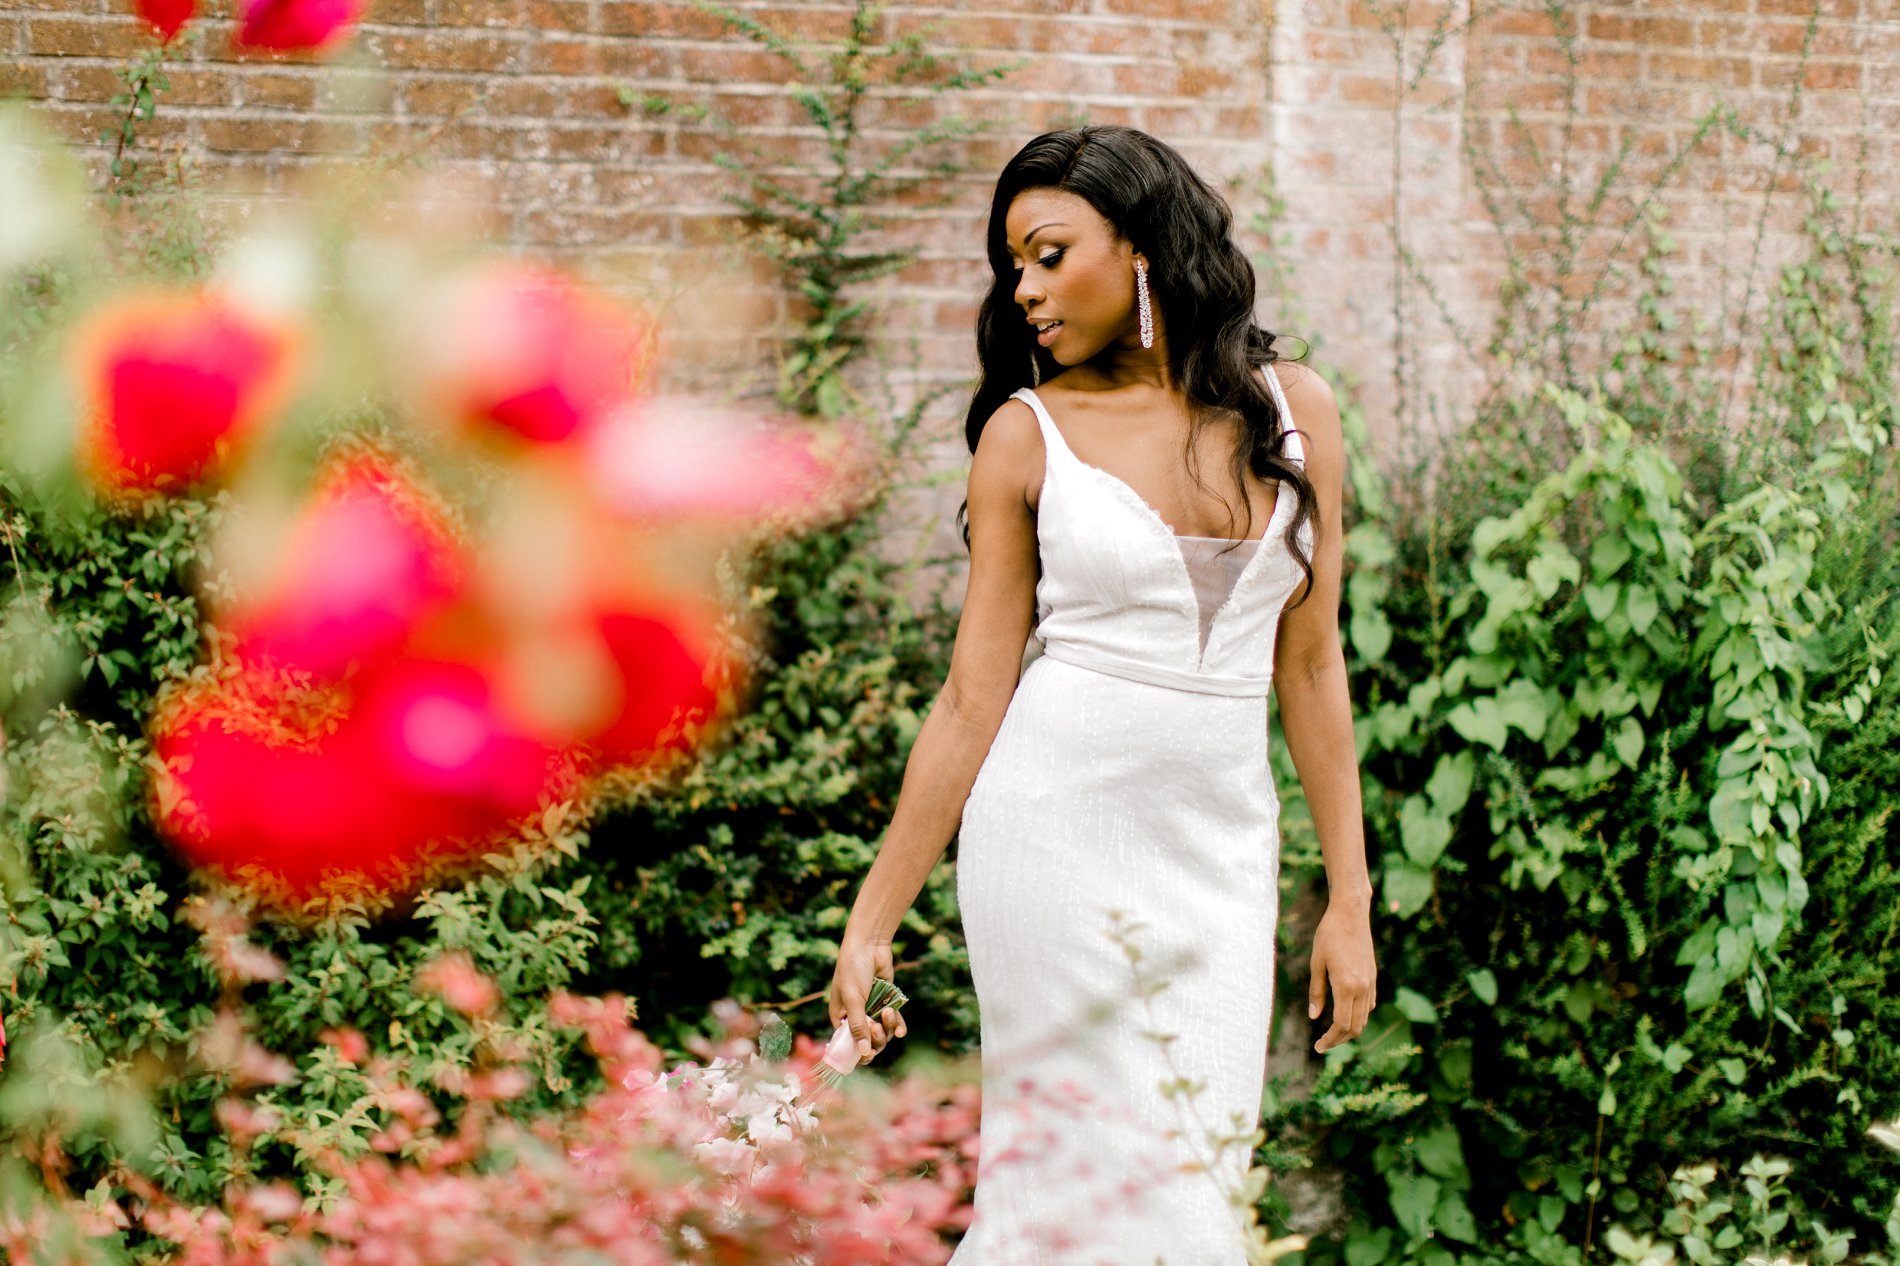 Forever Yours Styled Shoot (c) Camilla J. Hards and Courtney Dee Photography (54)